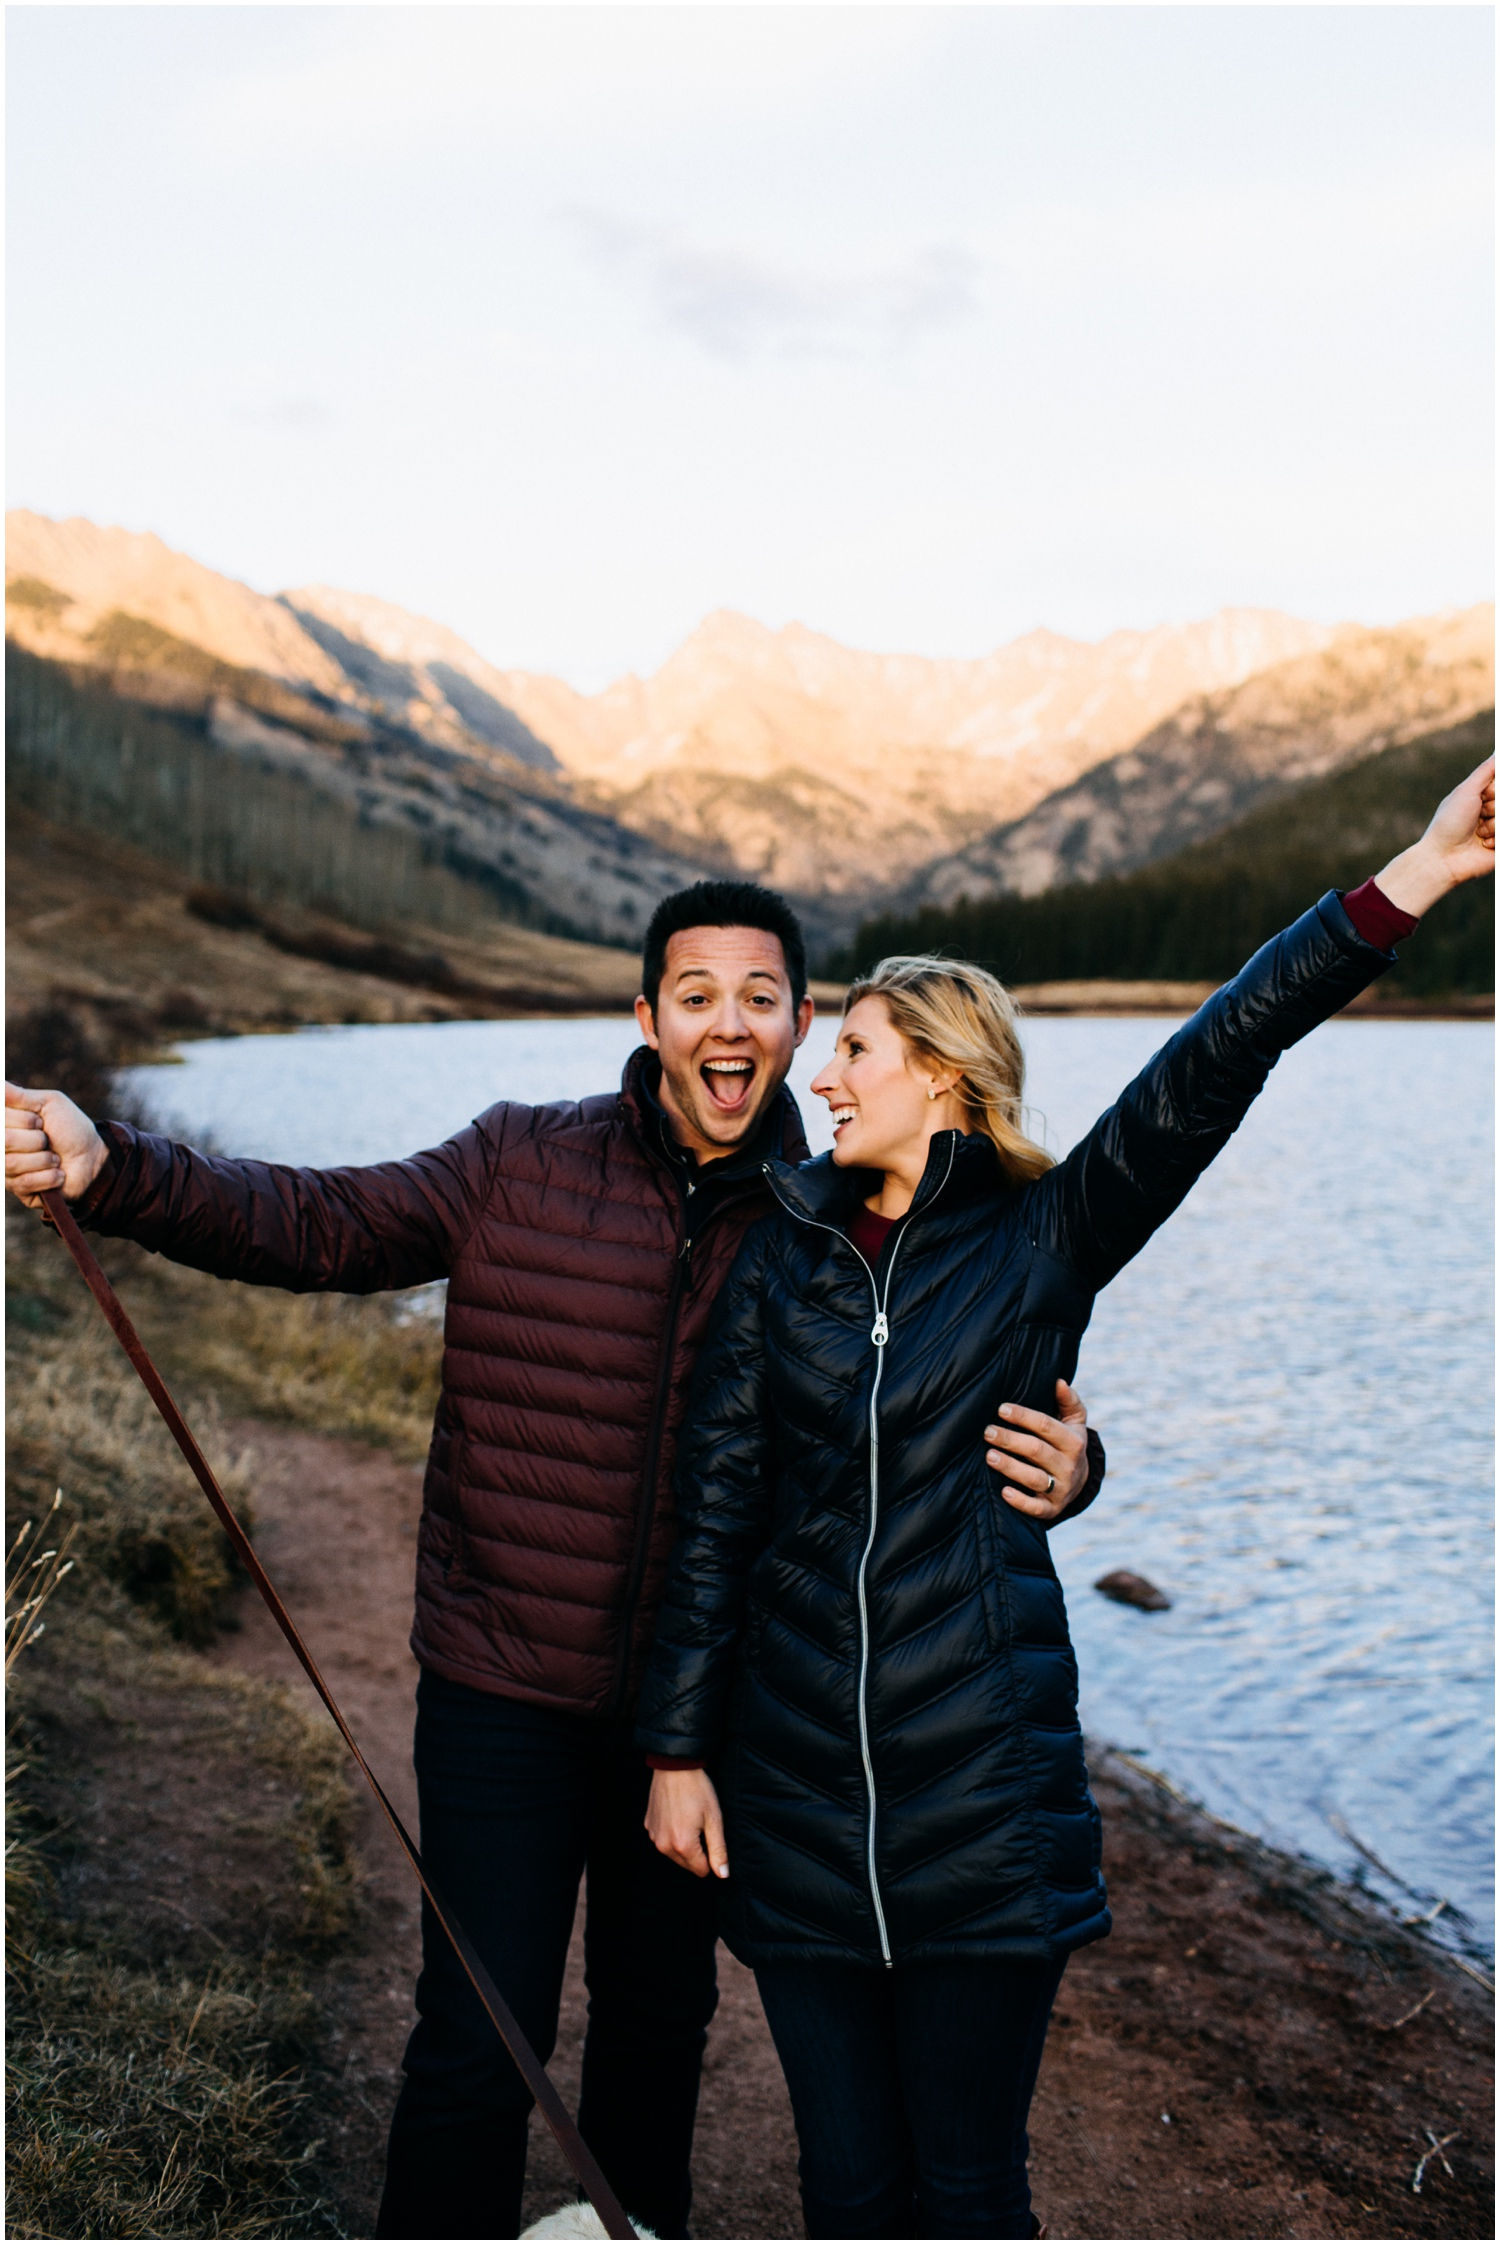 adventure_photo_engagement_session_vail_colorado_taylor_powers__0079.jpg